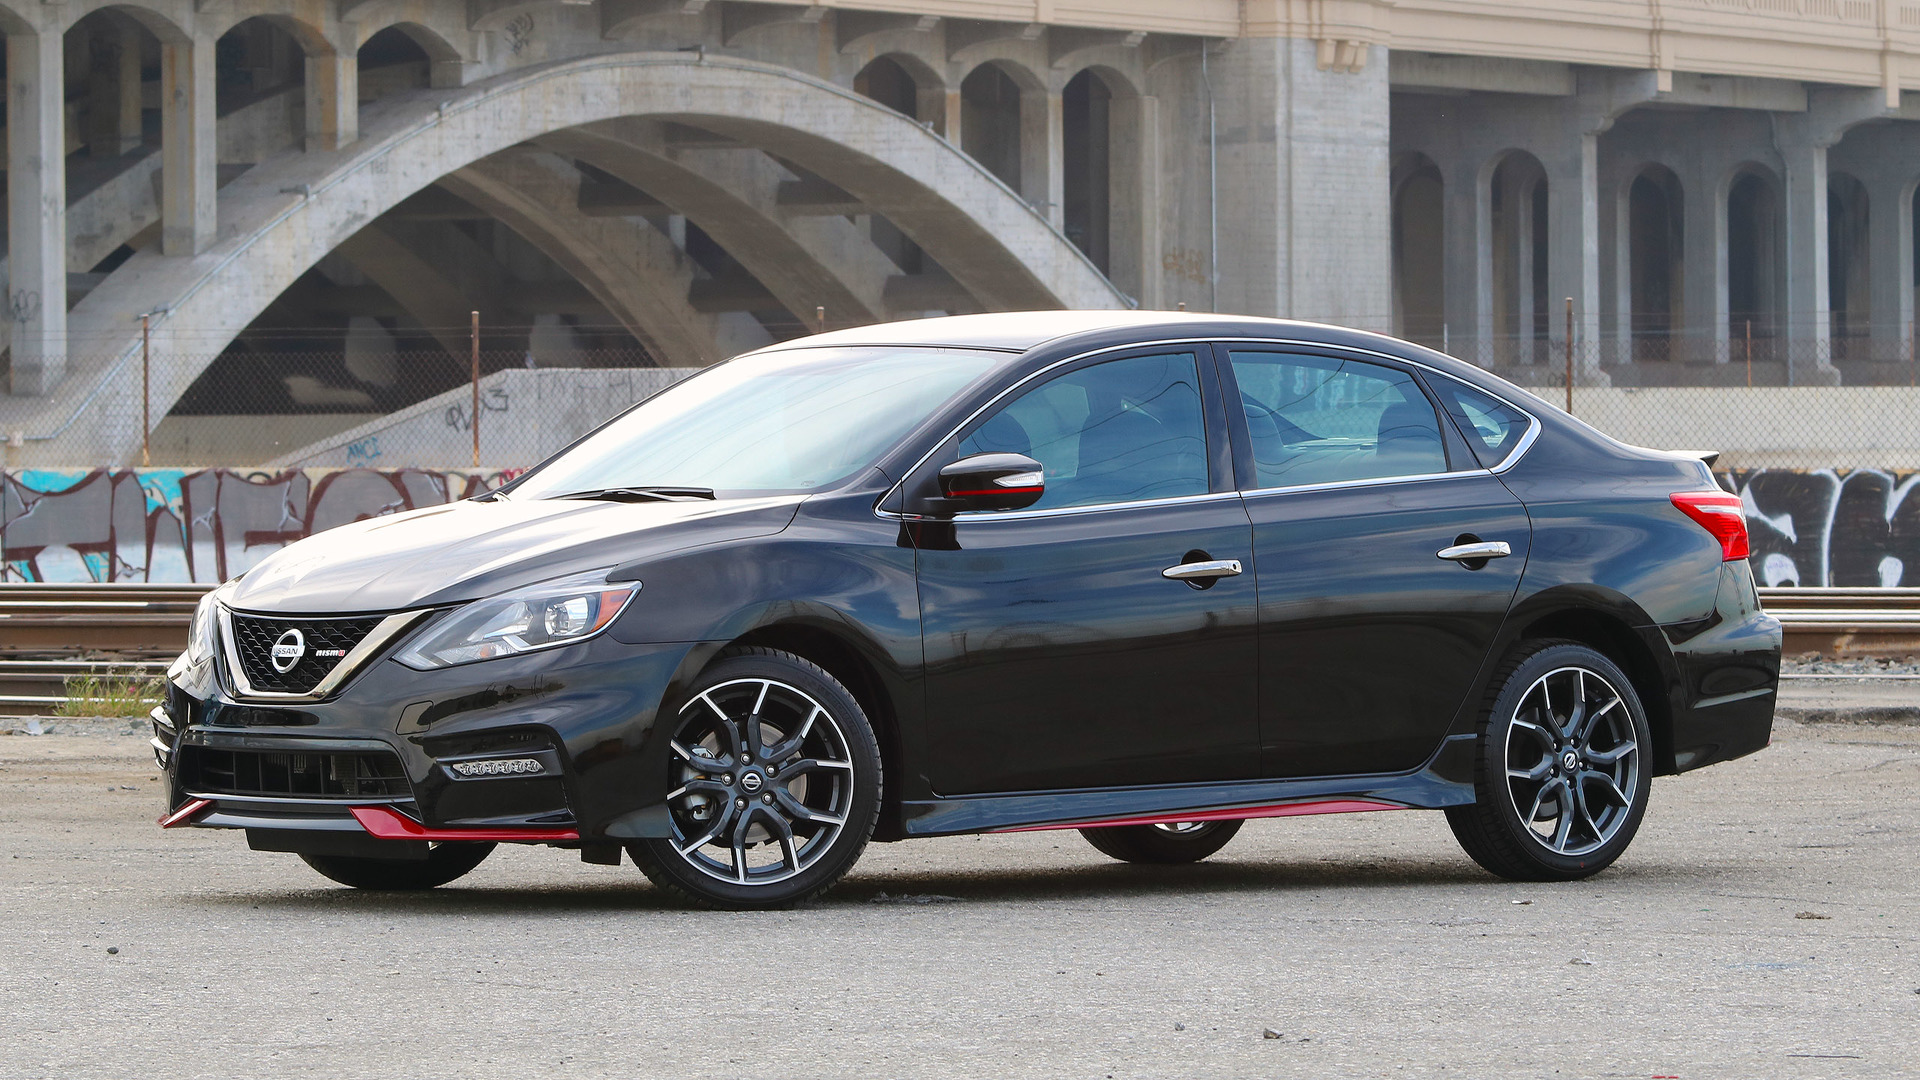 2017 Nissan Sentra Nismo Review The One We Were Waiting For